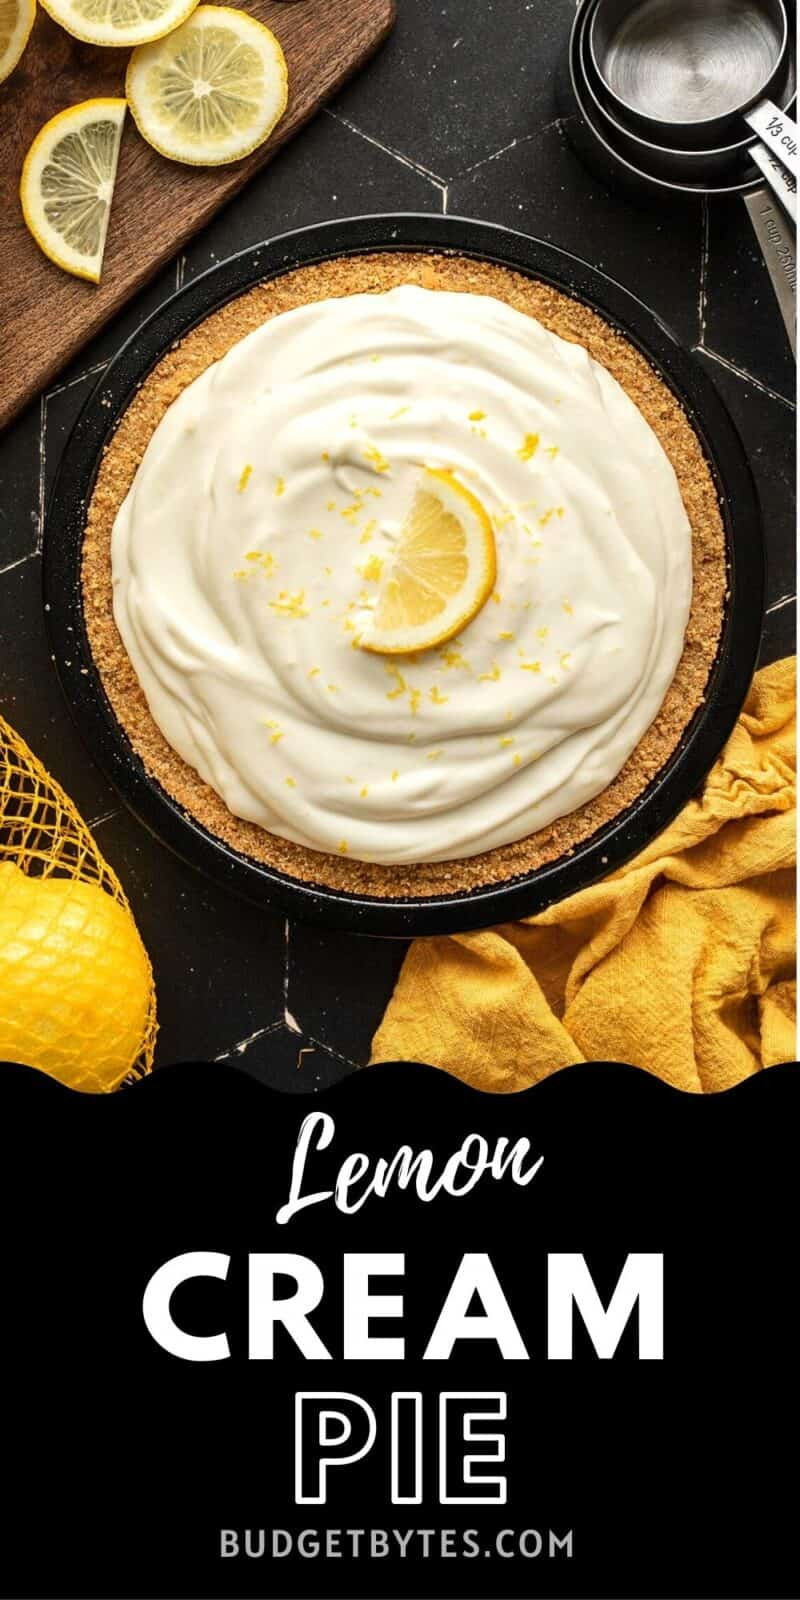 Overhead view of a lemon cream pie, title text at the bottom